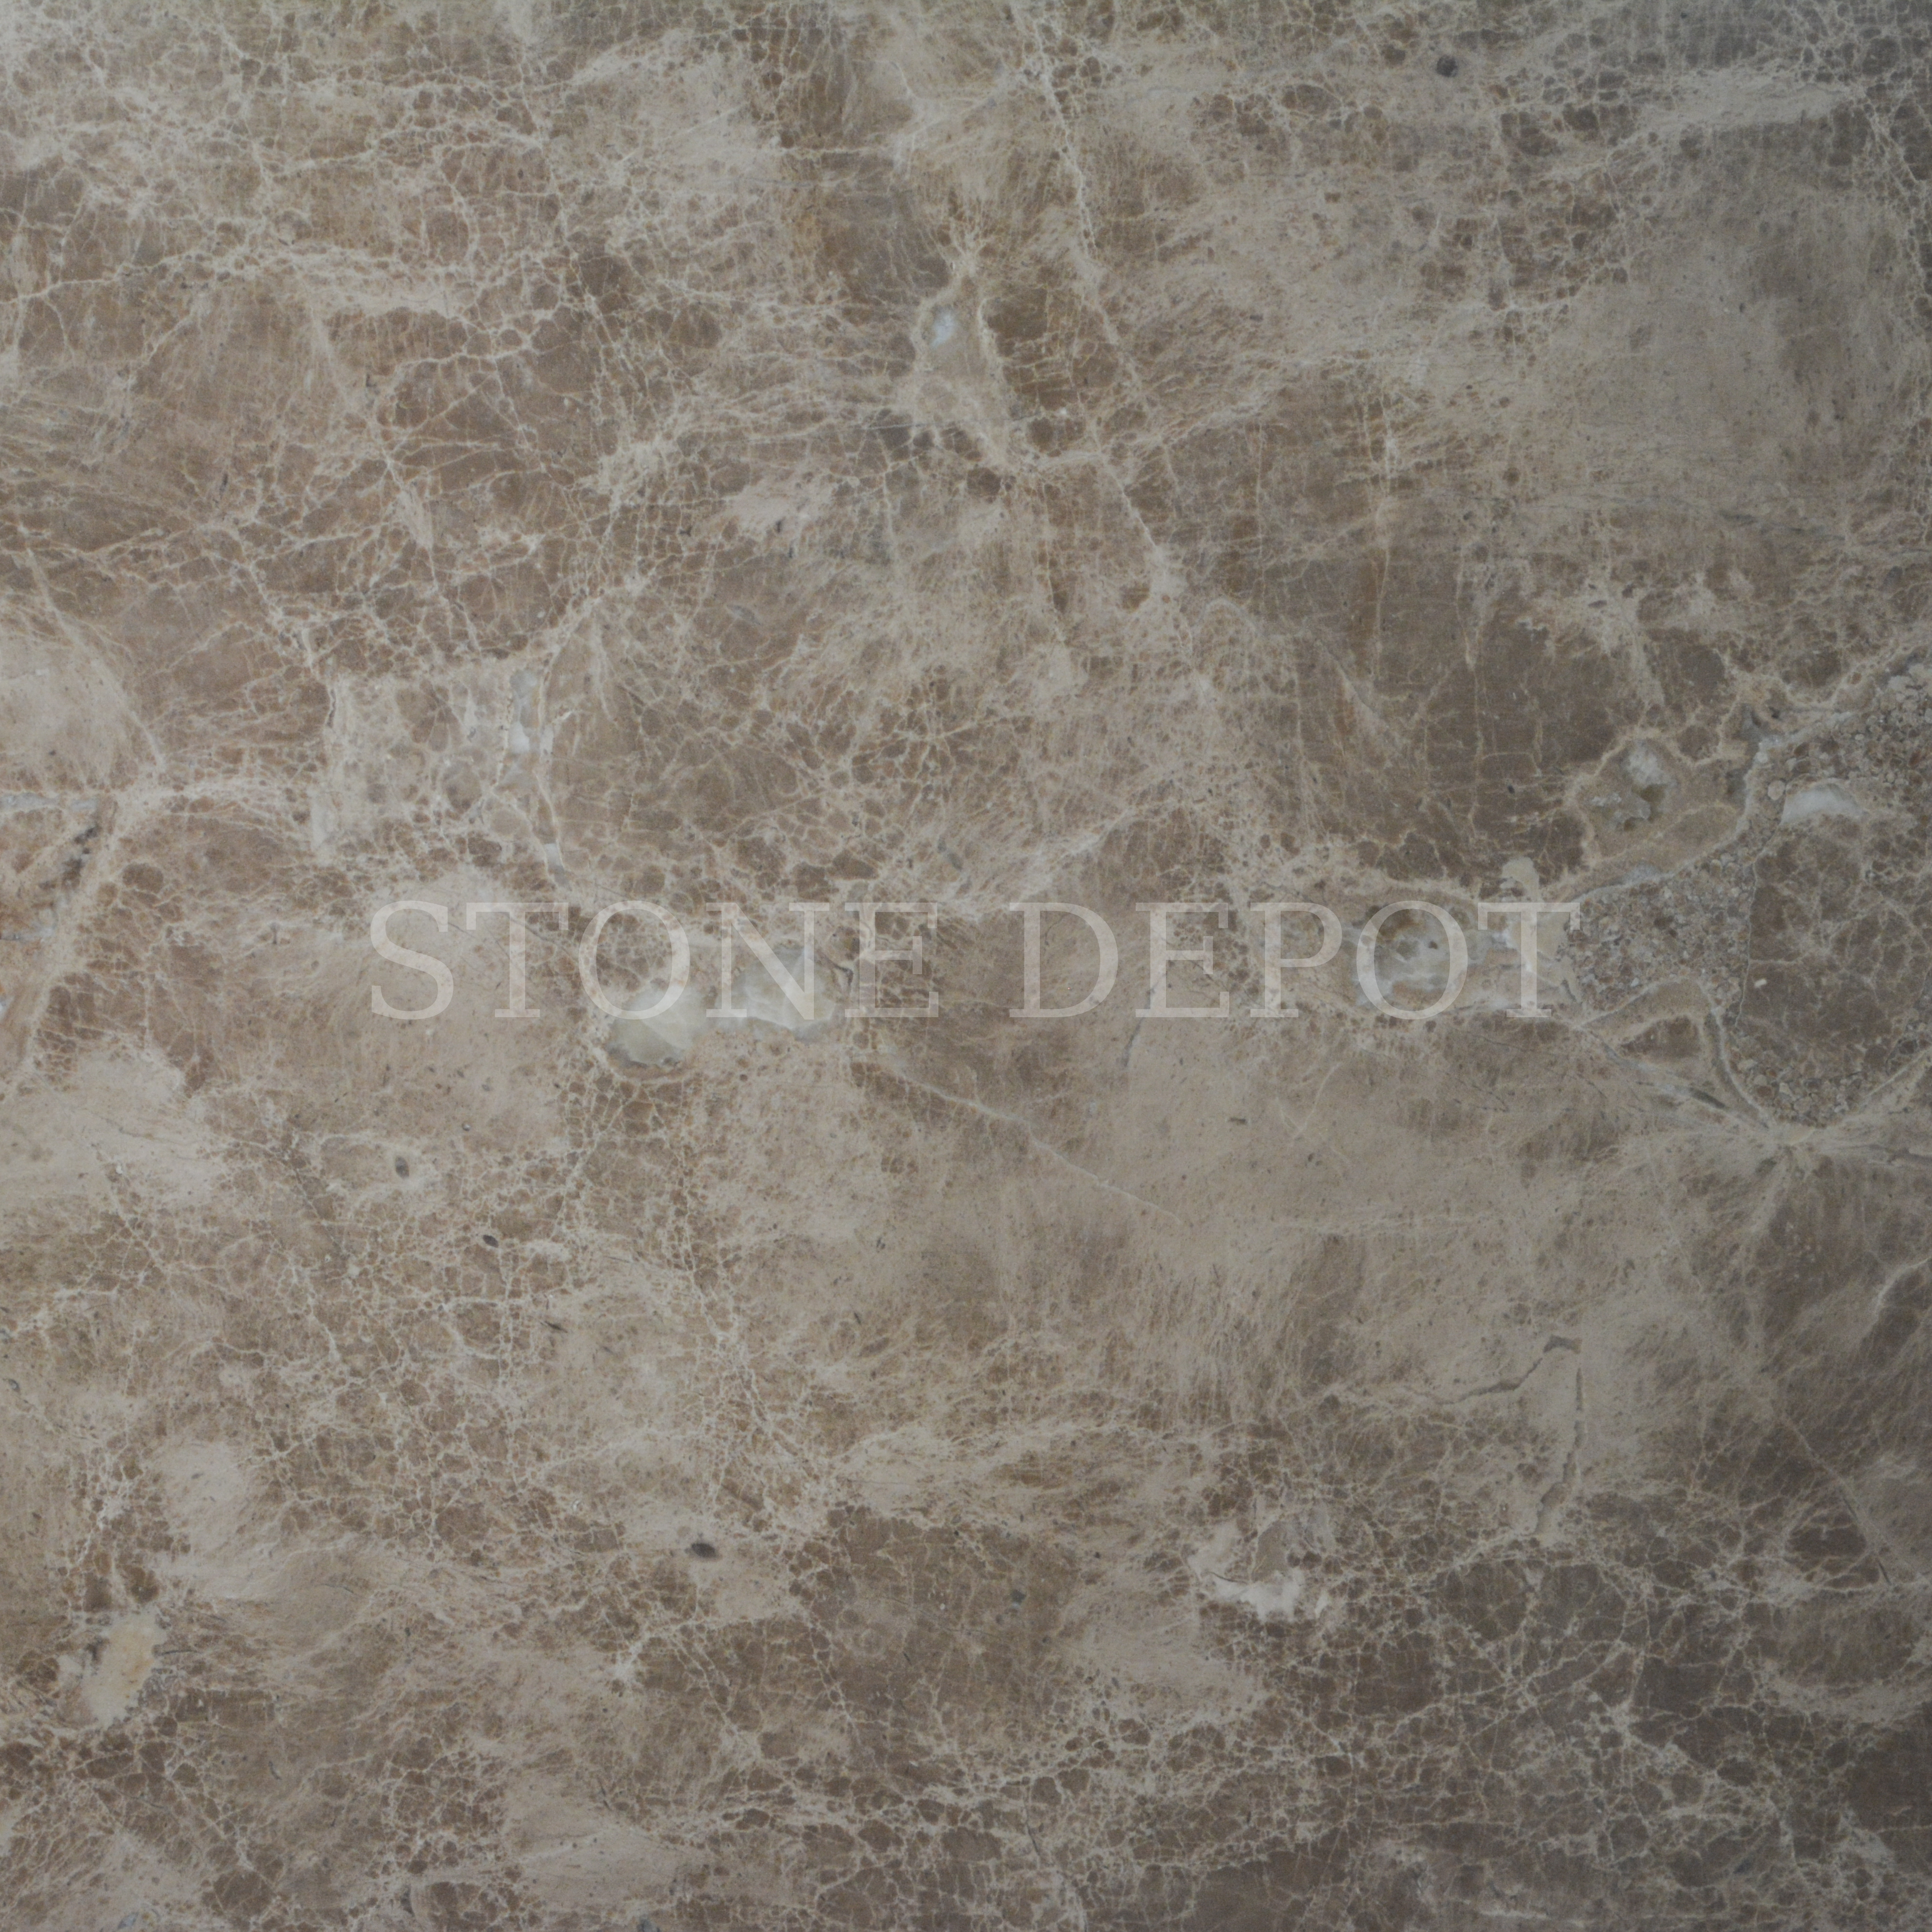 Granite Countertop Installation Cost Philippines : Gallery: Marbles ? STONE DEPOT